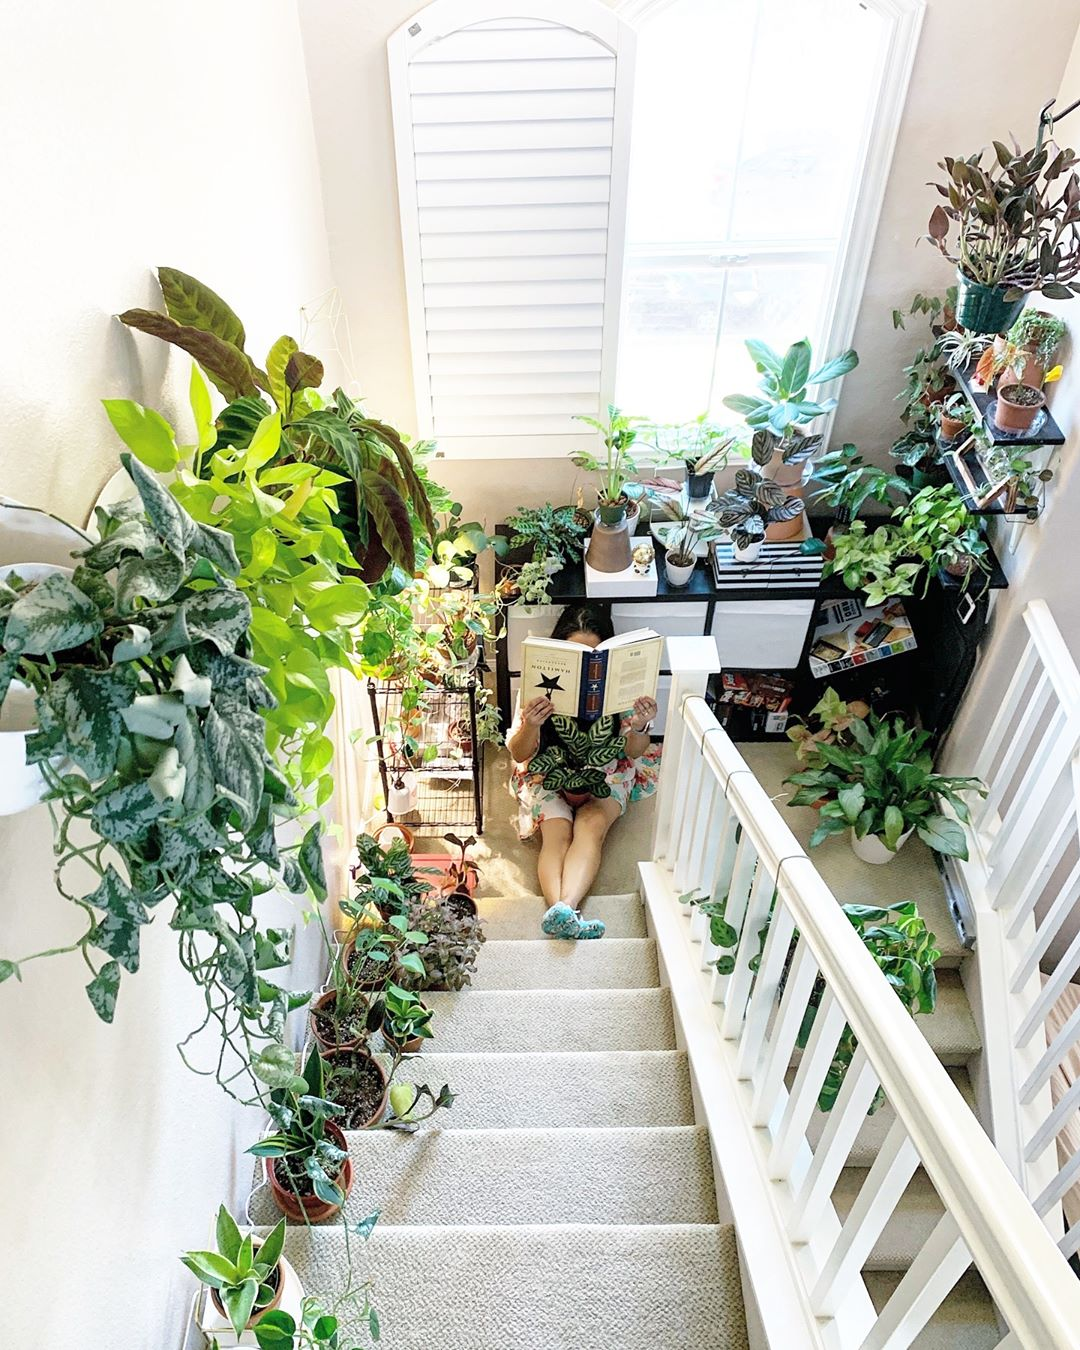 Girl sitting reading a book at the end of the stairs. Plants that surround the steps